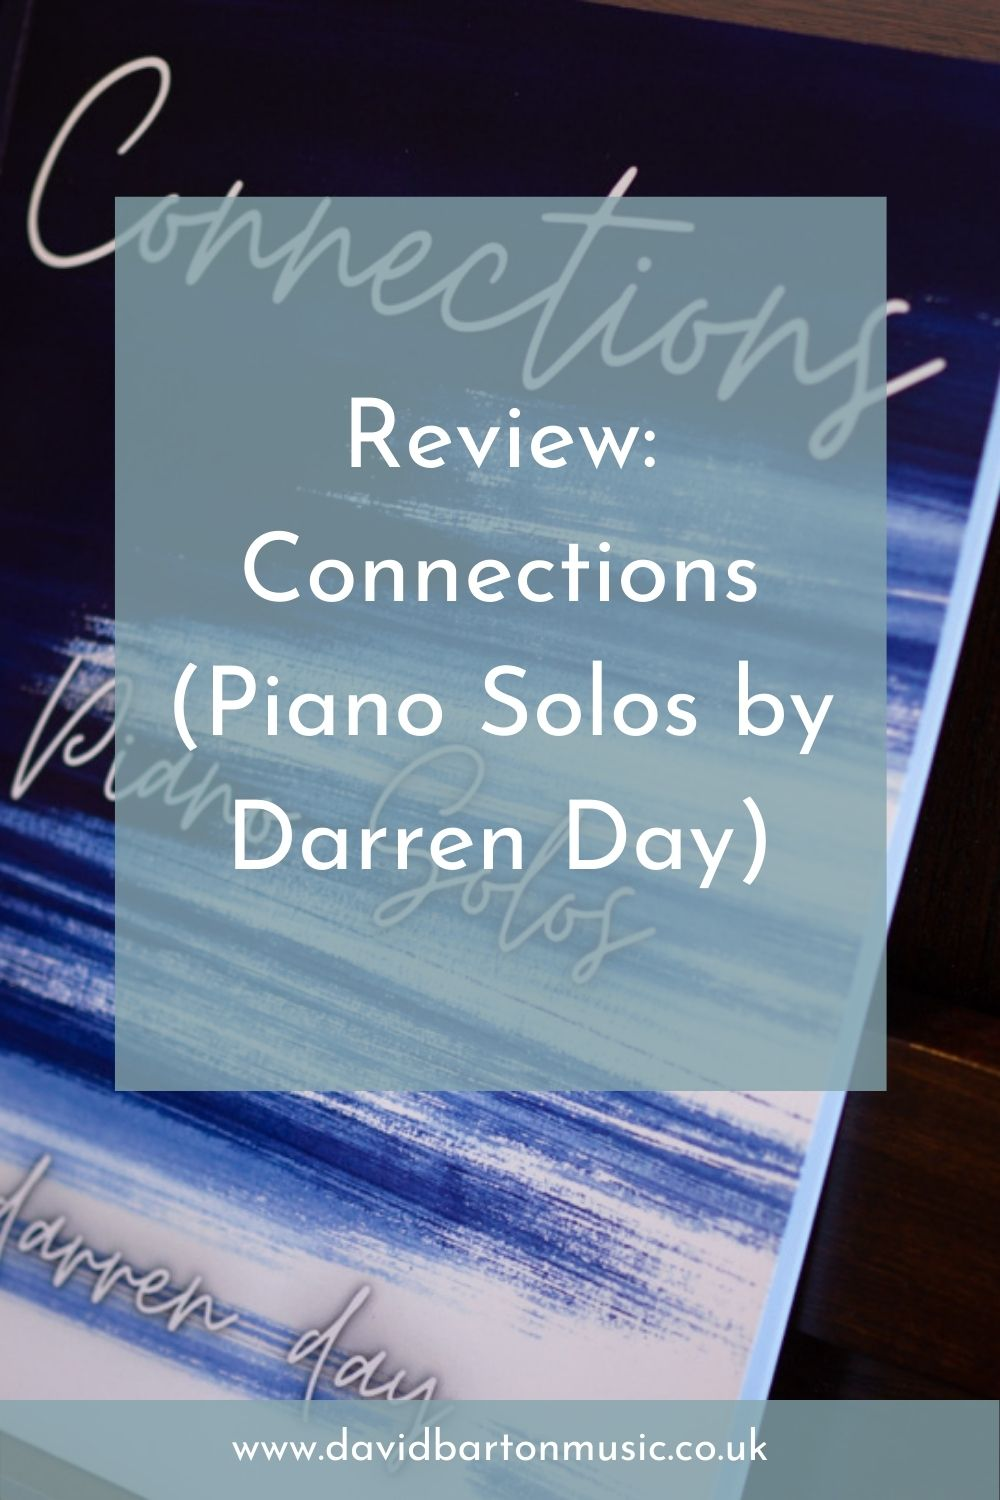 Review: Connections (Piano Solos by Darren Day) - Pinterest Graphic